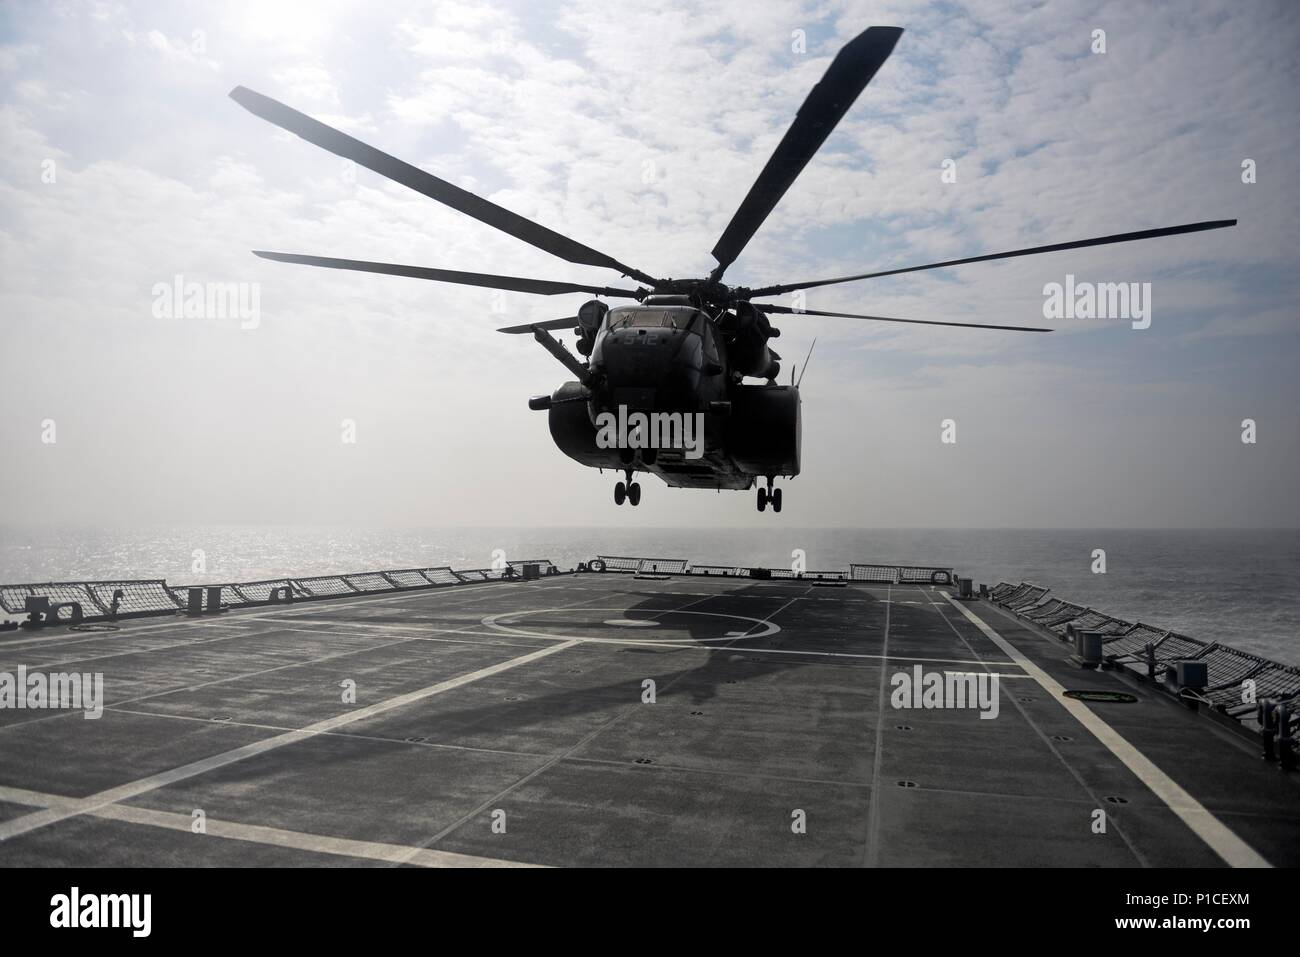 161018-N-WT427-199 WATERS EAST OF THE KOREAN PENINSULA, Republic of Korea (Oct. 18, 2016) An MH-53E Sea Dragon helicopter from Helicopter Squadron (HM) 14, approaches the Republic of Korea (ROK) mine laying ship ROKS Wonsan (MLS 560), during exercise Clear Horizon. Exercise Clear Horizon is an annual bilateral exercise between the U.S. and Republic of Korea navies that focus on increasing capabilities and coordination between ships and aircraft in mine countermeasures in international waters surrounding the Korean peninsula. (U.S. Navy photo by Petty Officer 2nd Class Jermaine M. Ralliford) Stock Photo